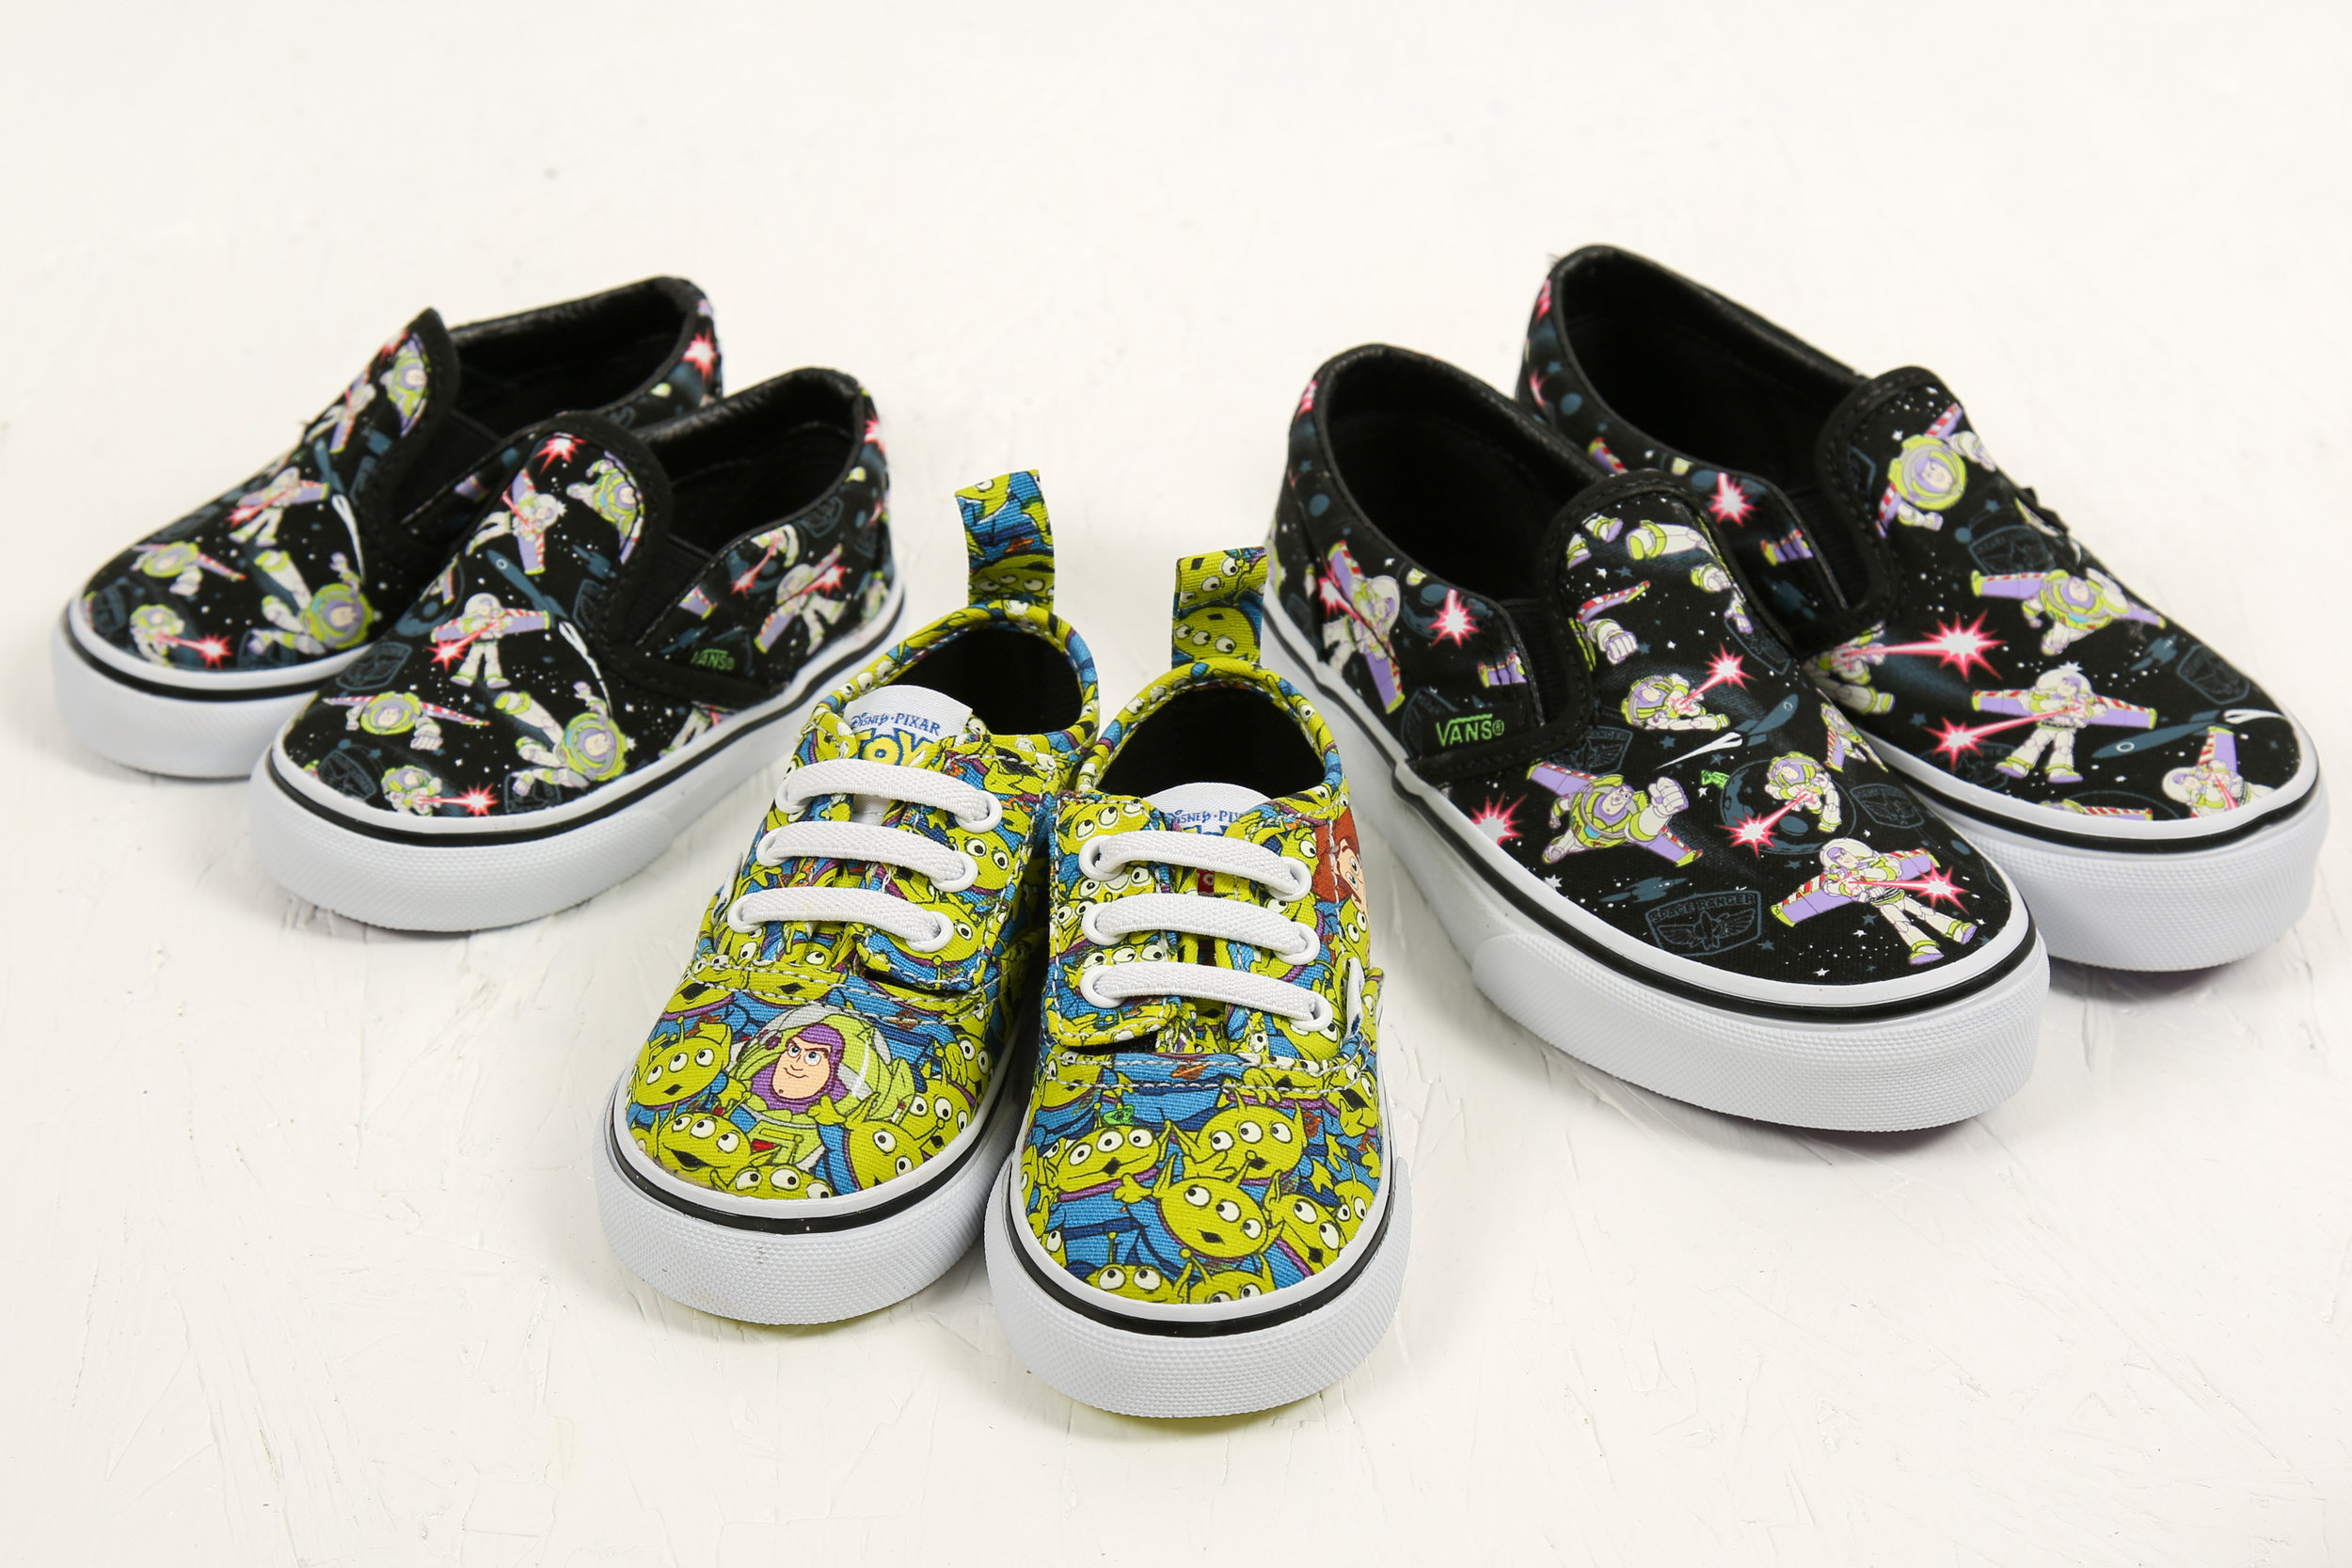 Vans x Disney PIXAR Toy Story  collection is available now.